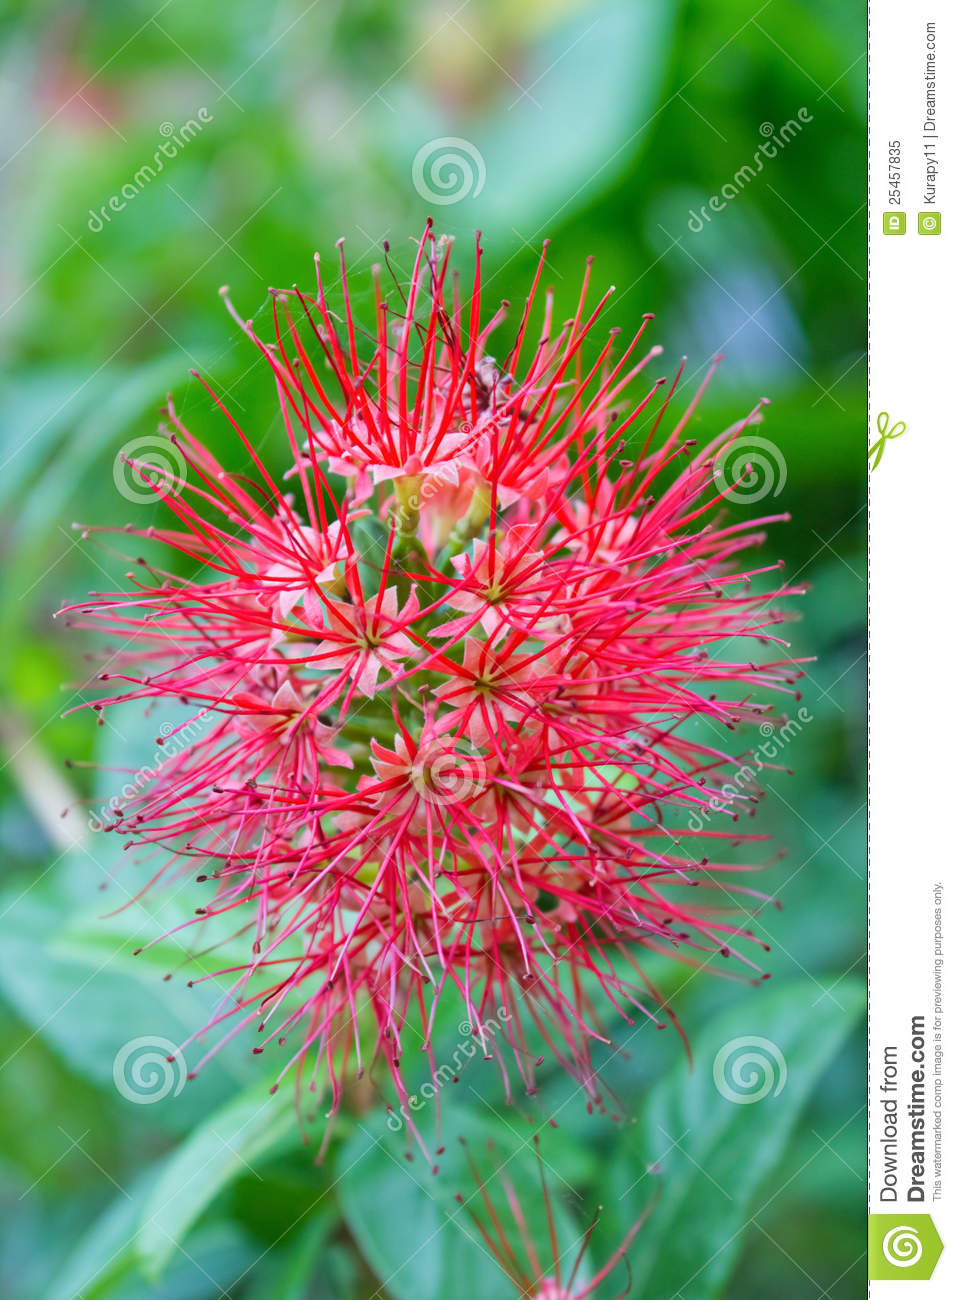 Free Fall Wallpaper Pics Red Needle Flower Royalty Free Stock Photo Image 25457835